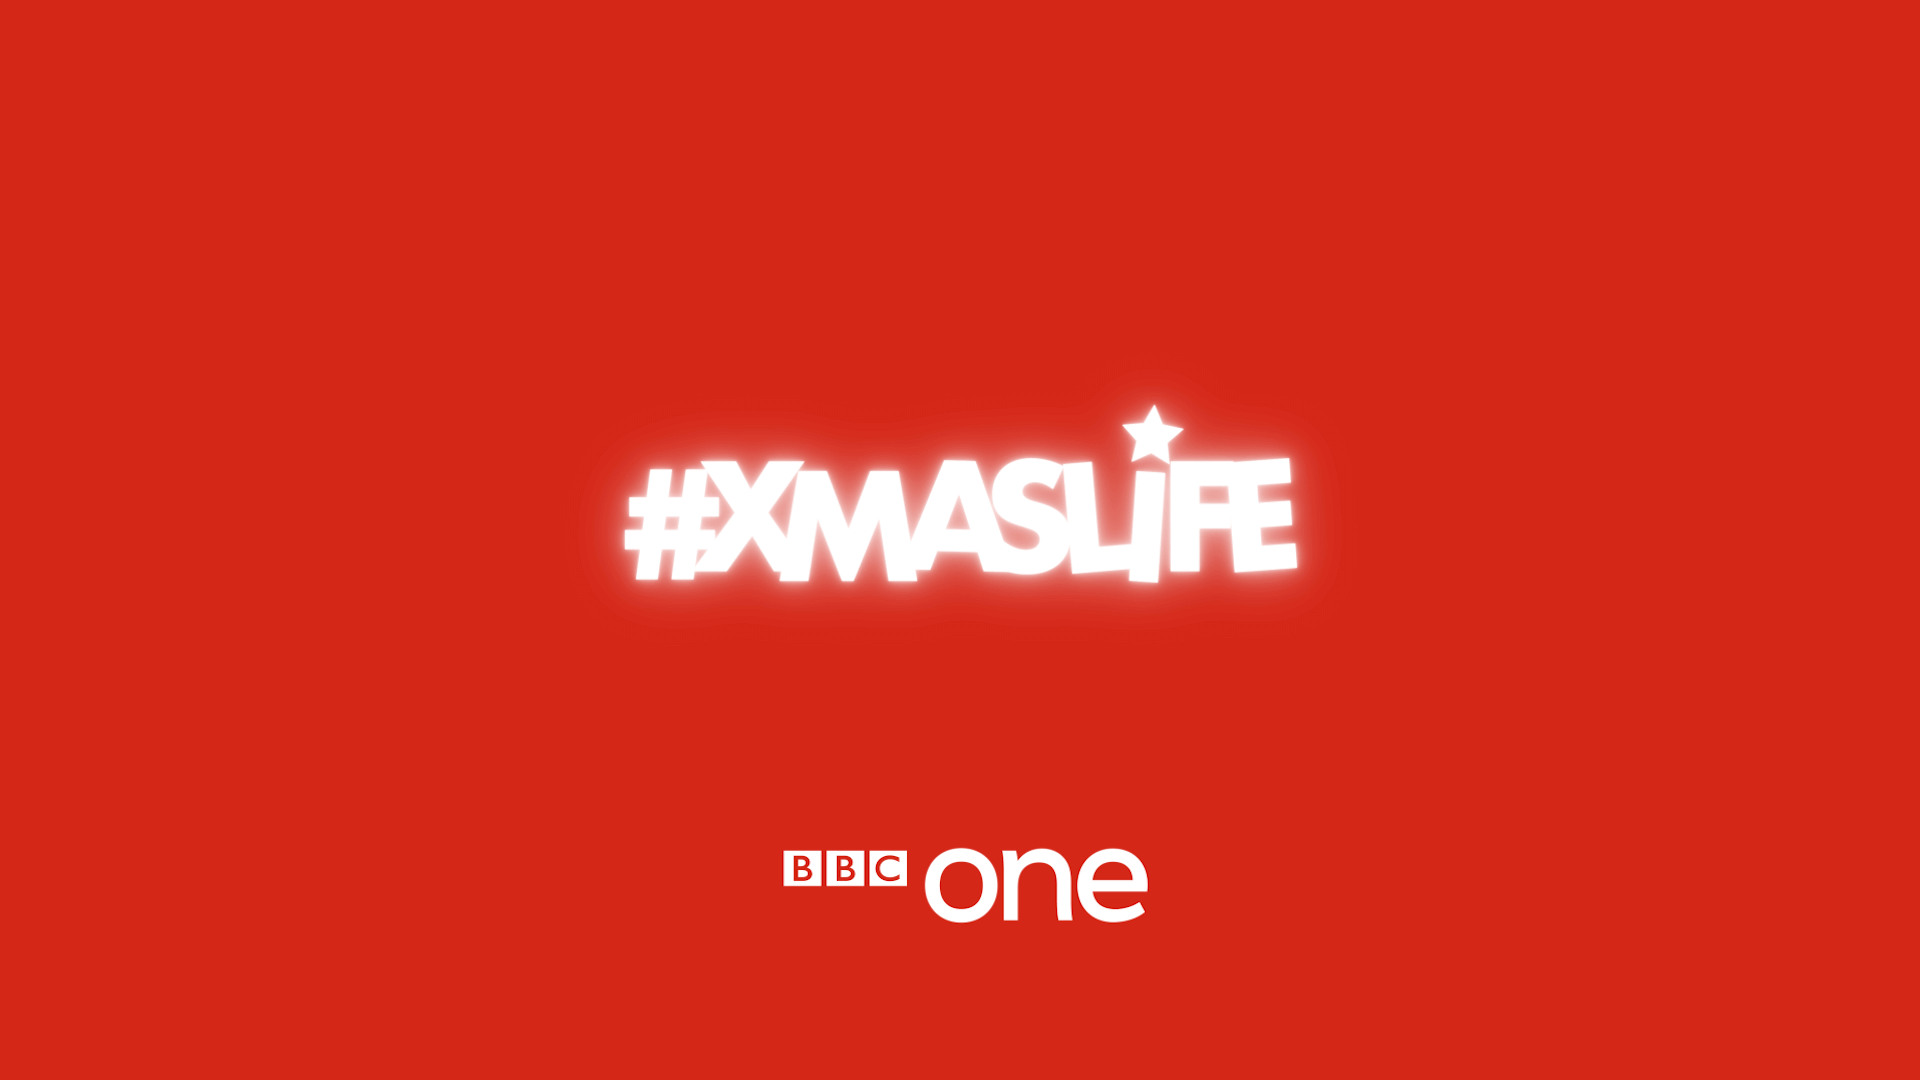 BBC Christmas – #XMASLIFE (2019)